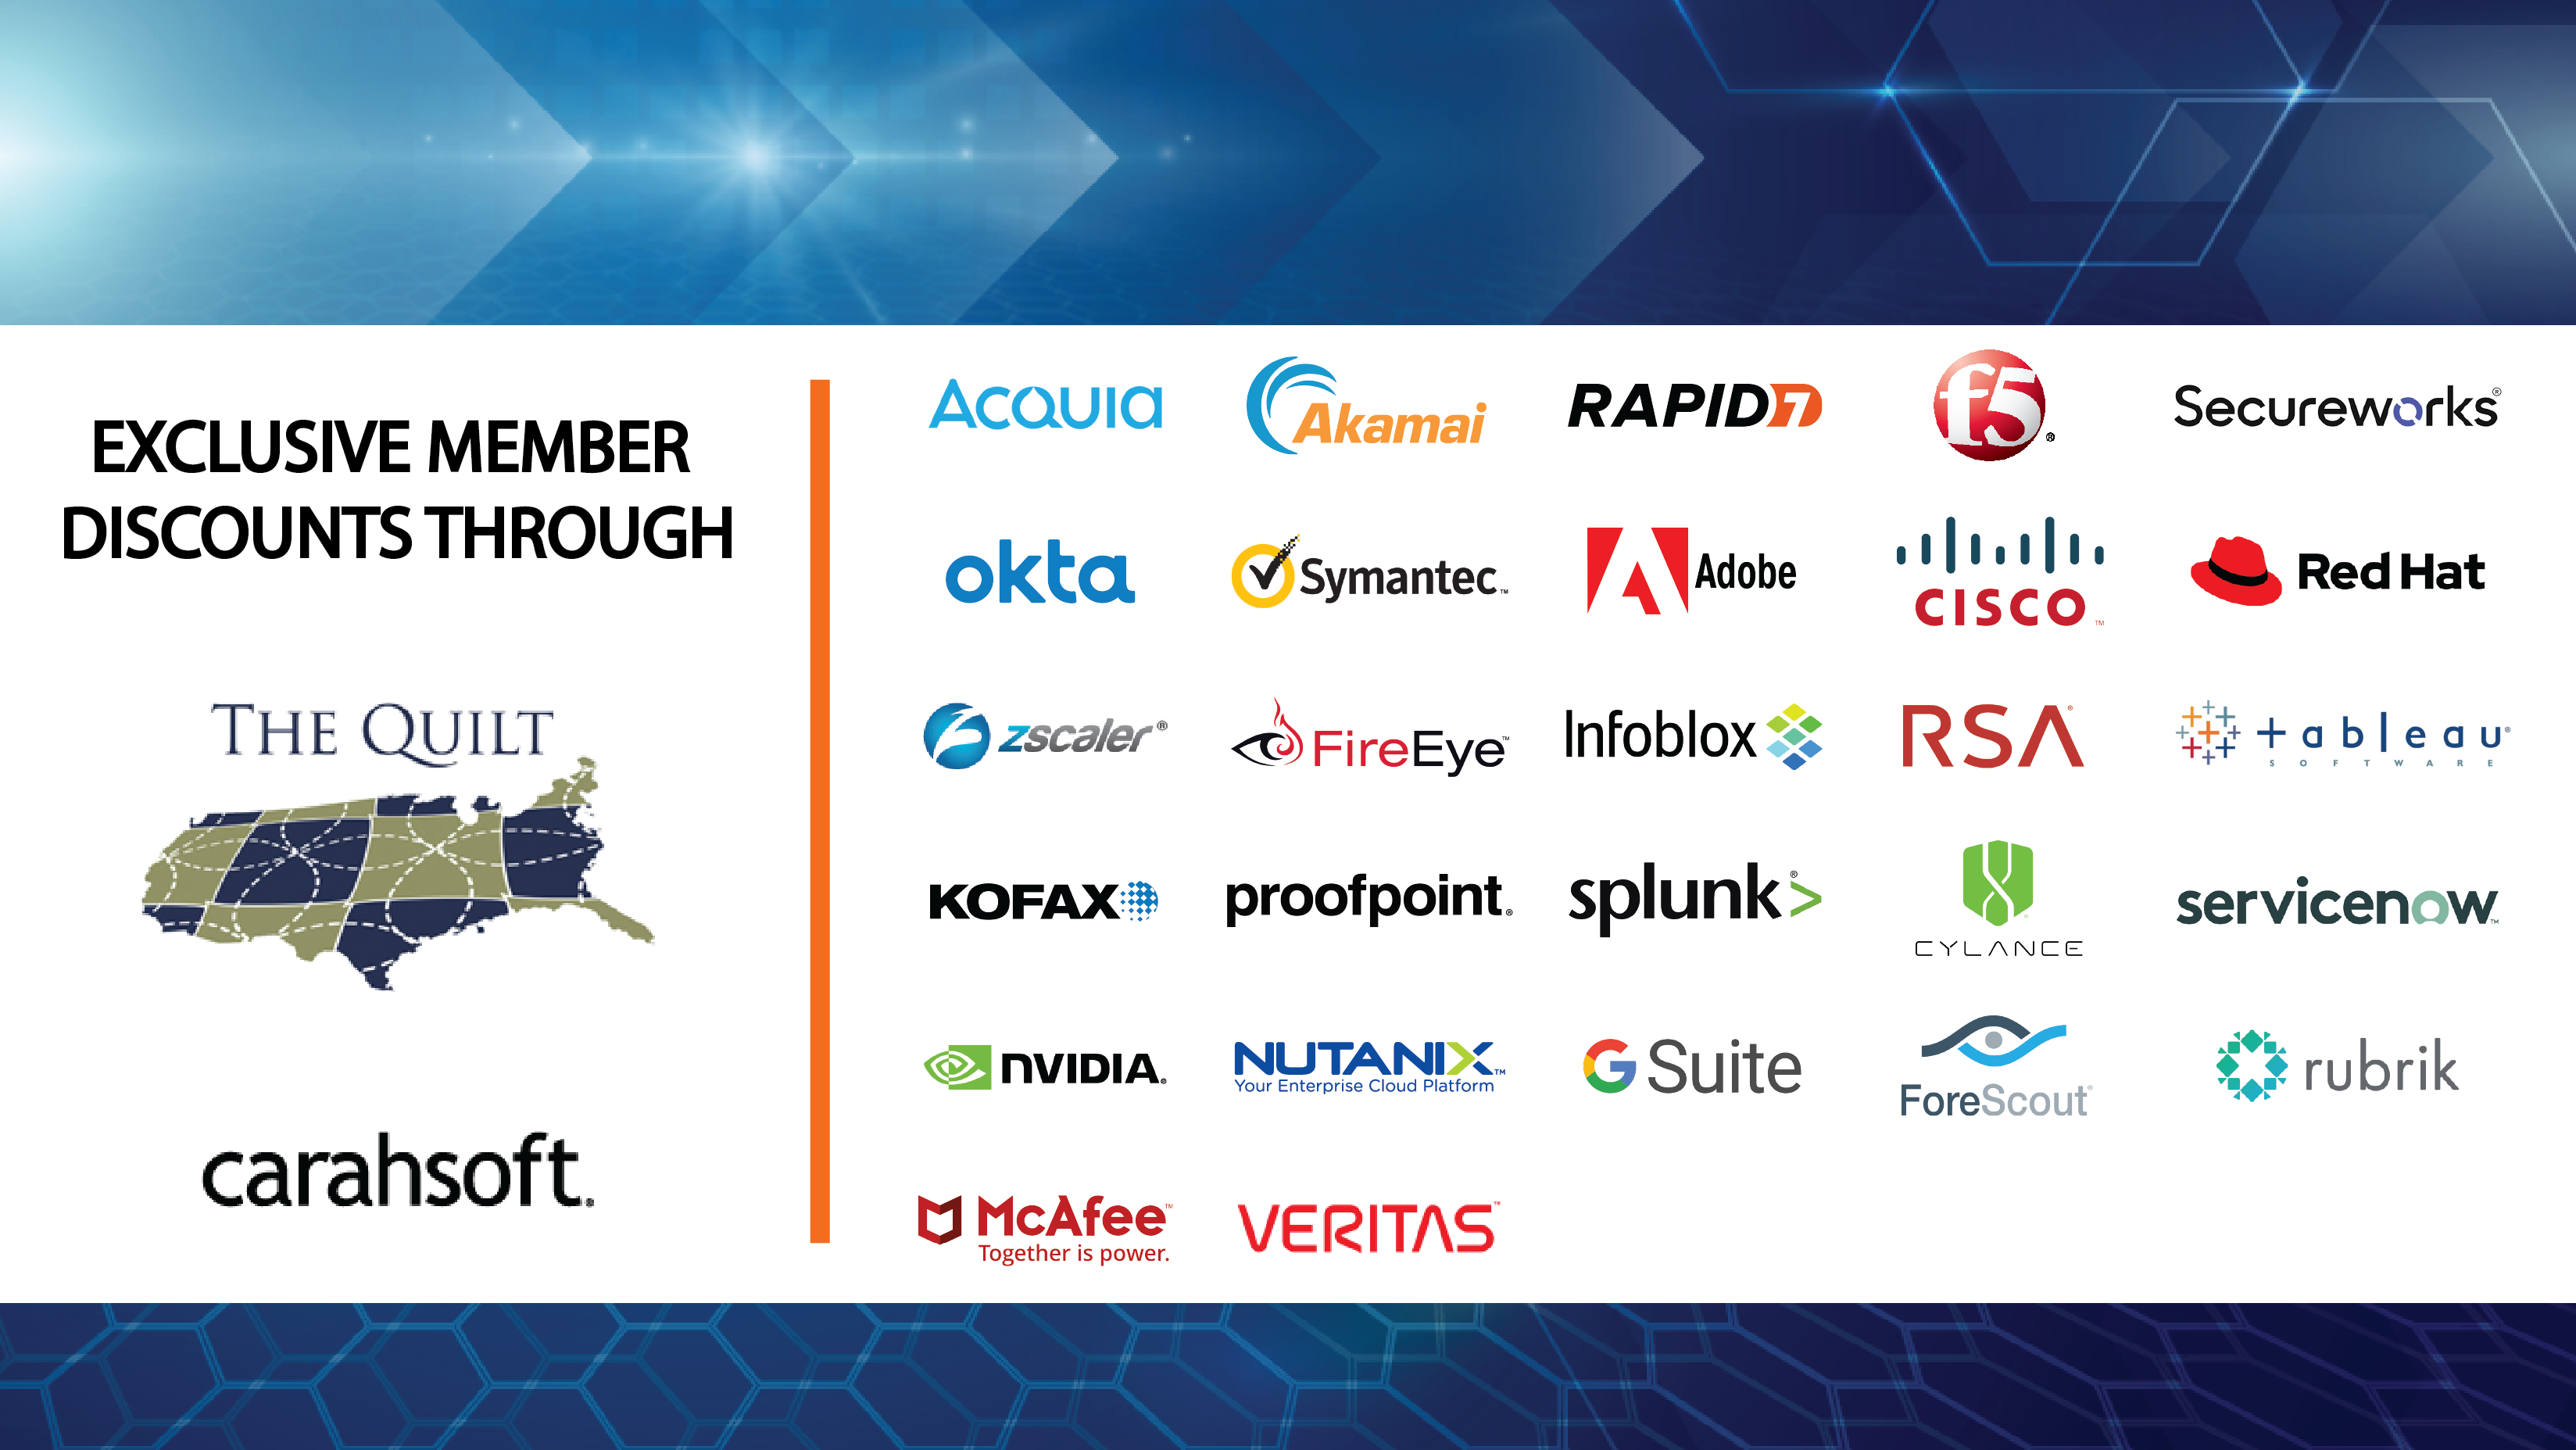 Exclusive Member Discounts Through The Quilt Carahsoft. Rows of logos including: Acquia, Akamai, Rapid7, F5, Secureworks, Symantec, Zscaler, RSA, Proofpoint, Splunk, Servicenow, Nutanix, Adobe, Cisco, Cylance, Fire Eye, Forescout, Google G-Suite, Kofax, McAfee, Nvidia, Red Hat, Rubrik, Tableau, Veritas